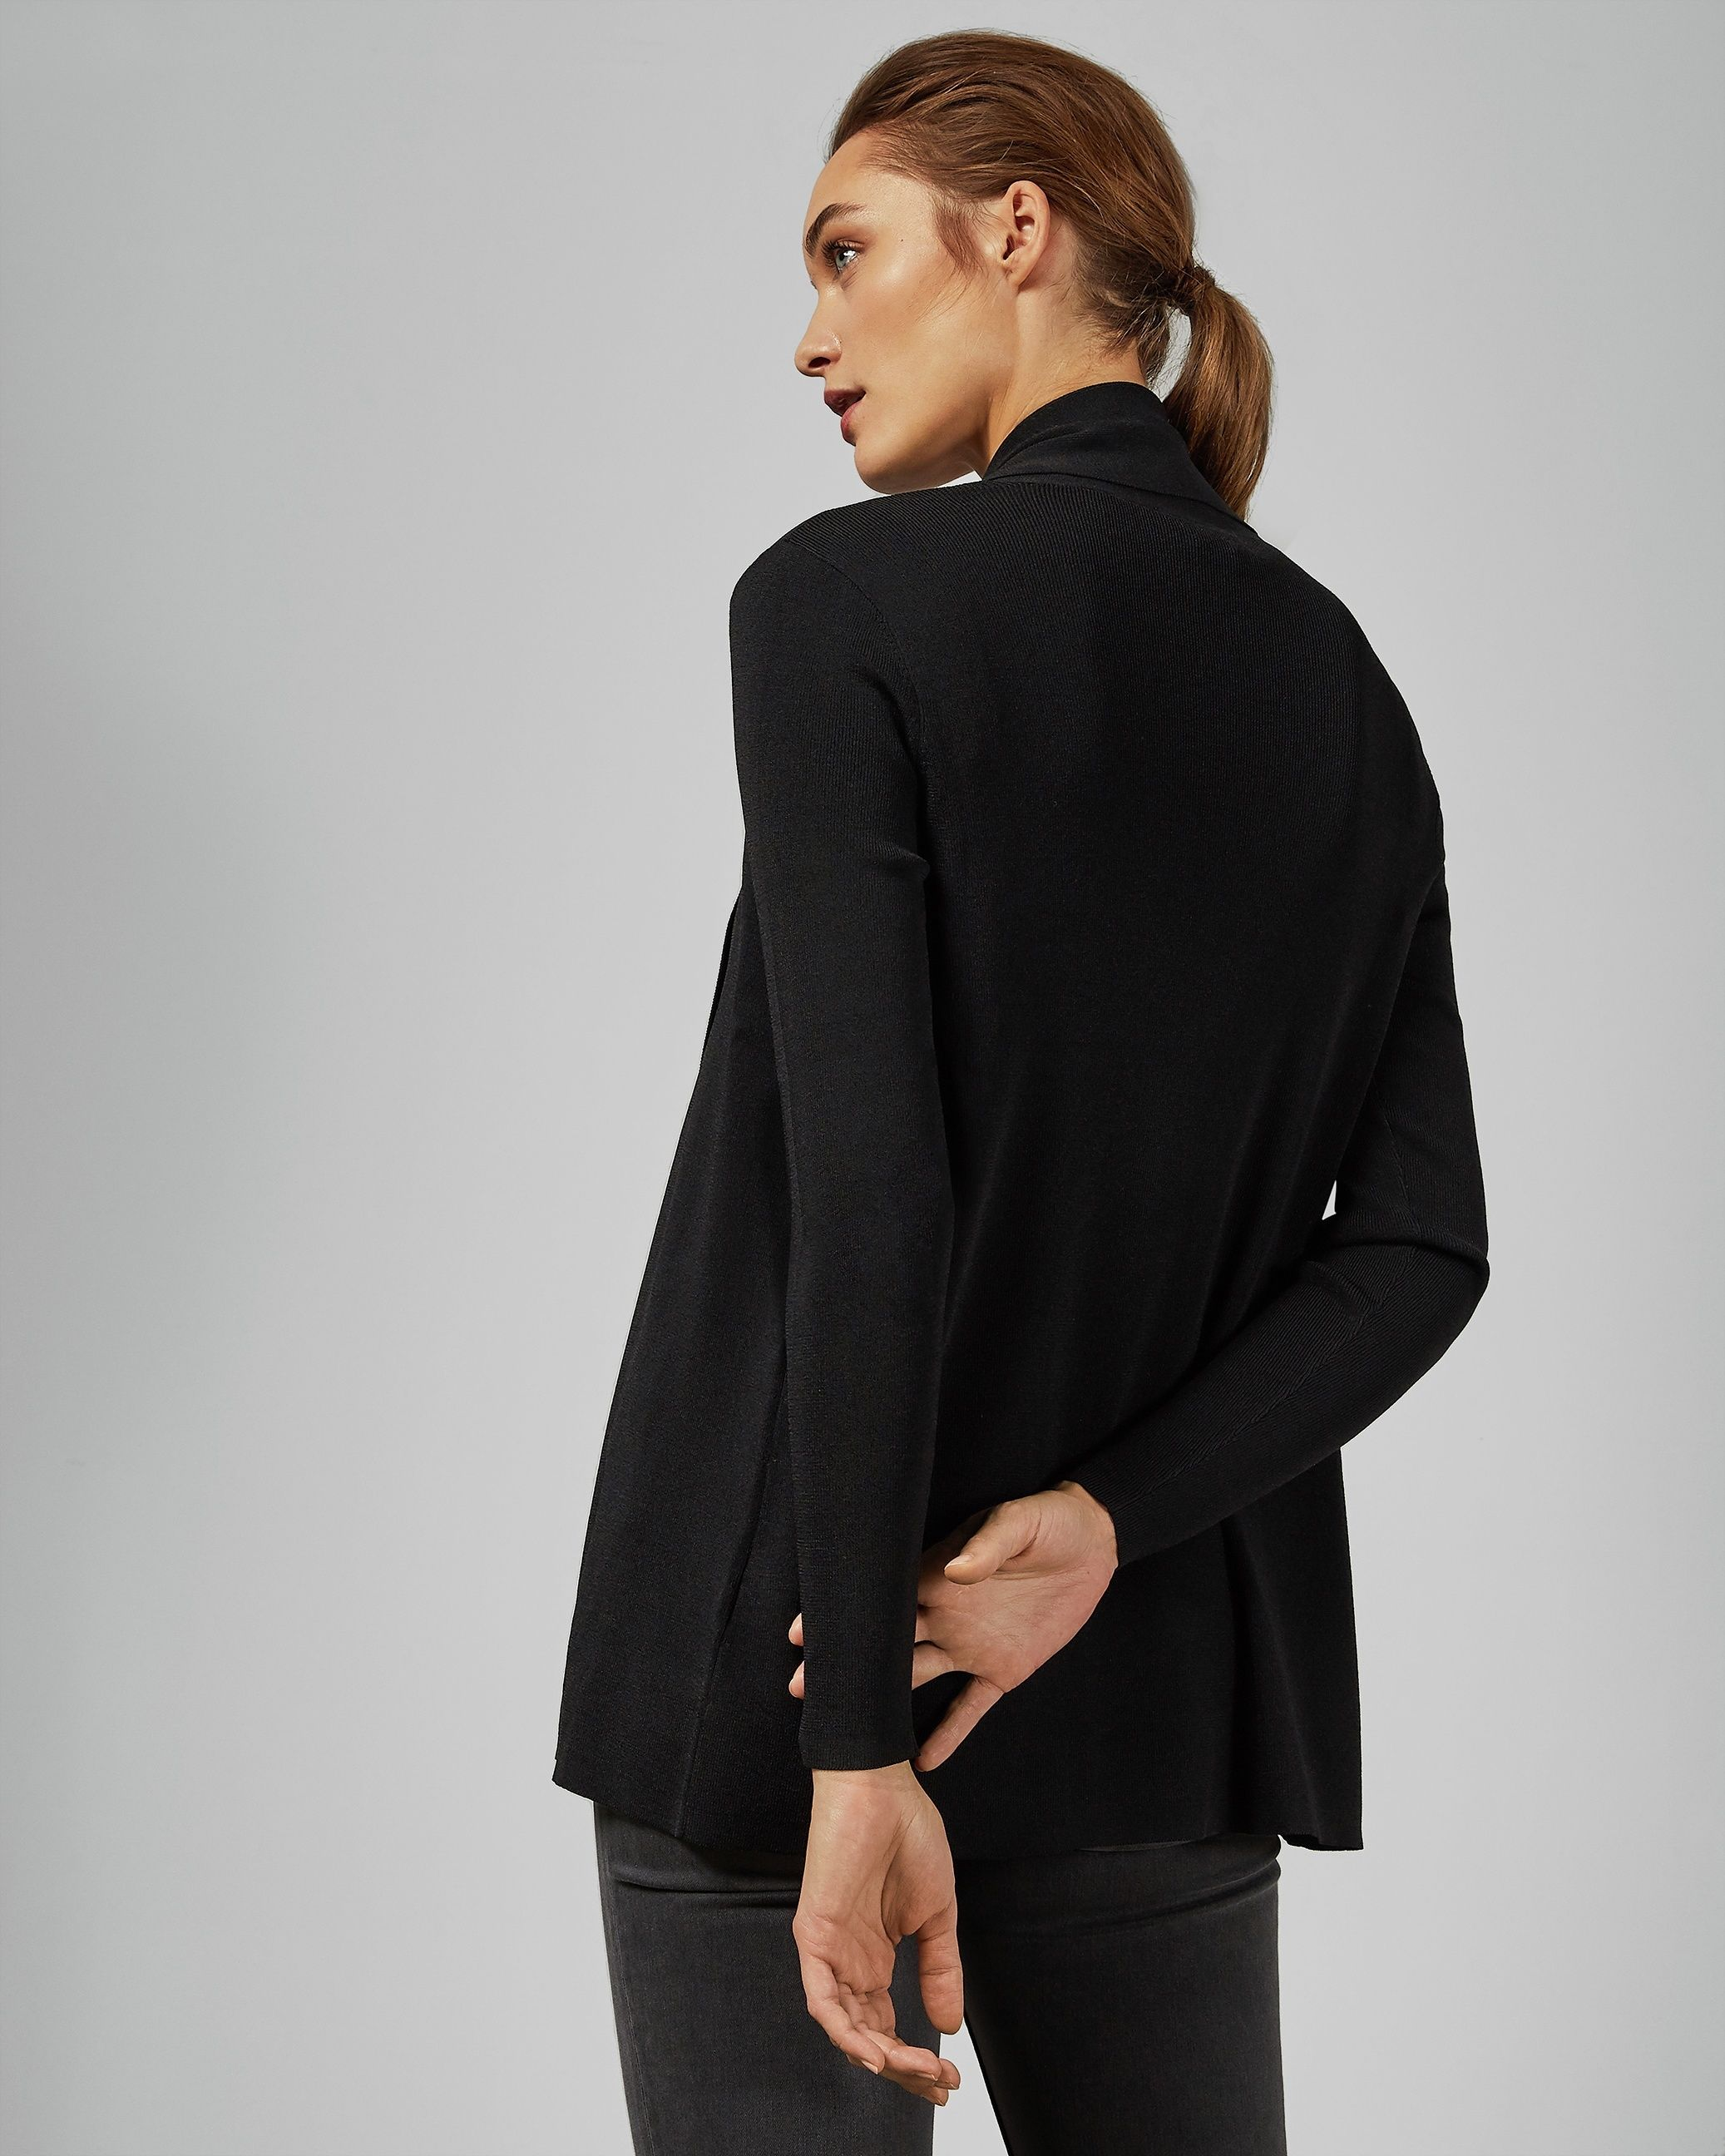 Ted Baker Leby Woven Detail Knitted Cardigan in Black